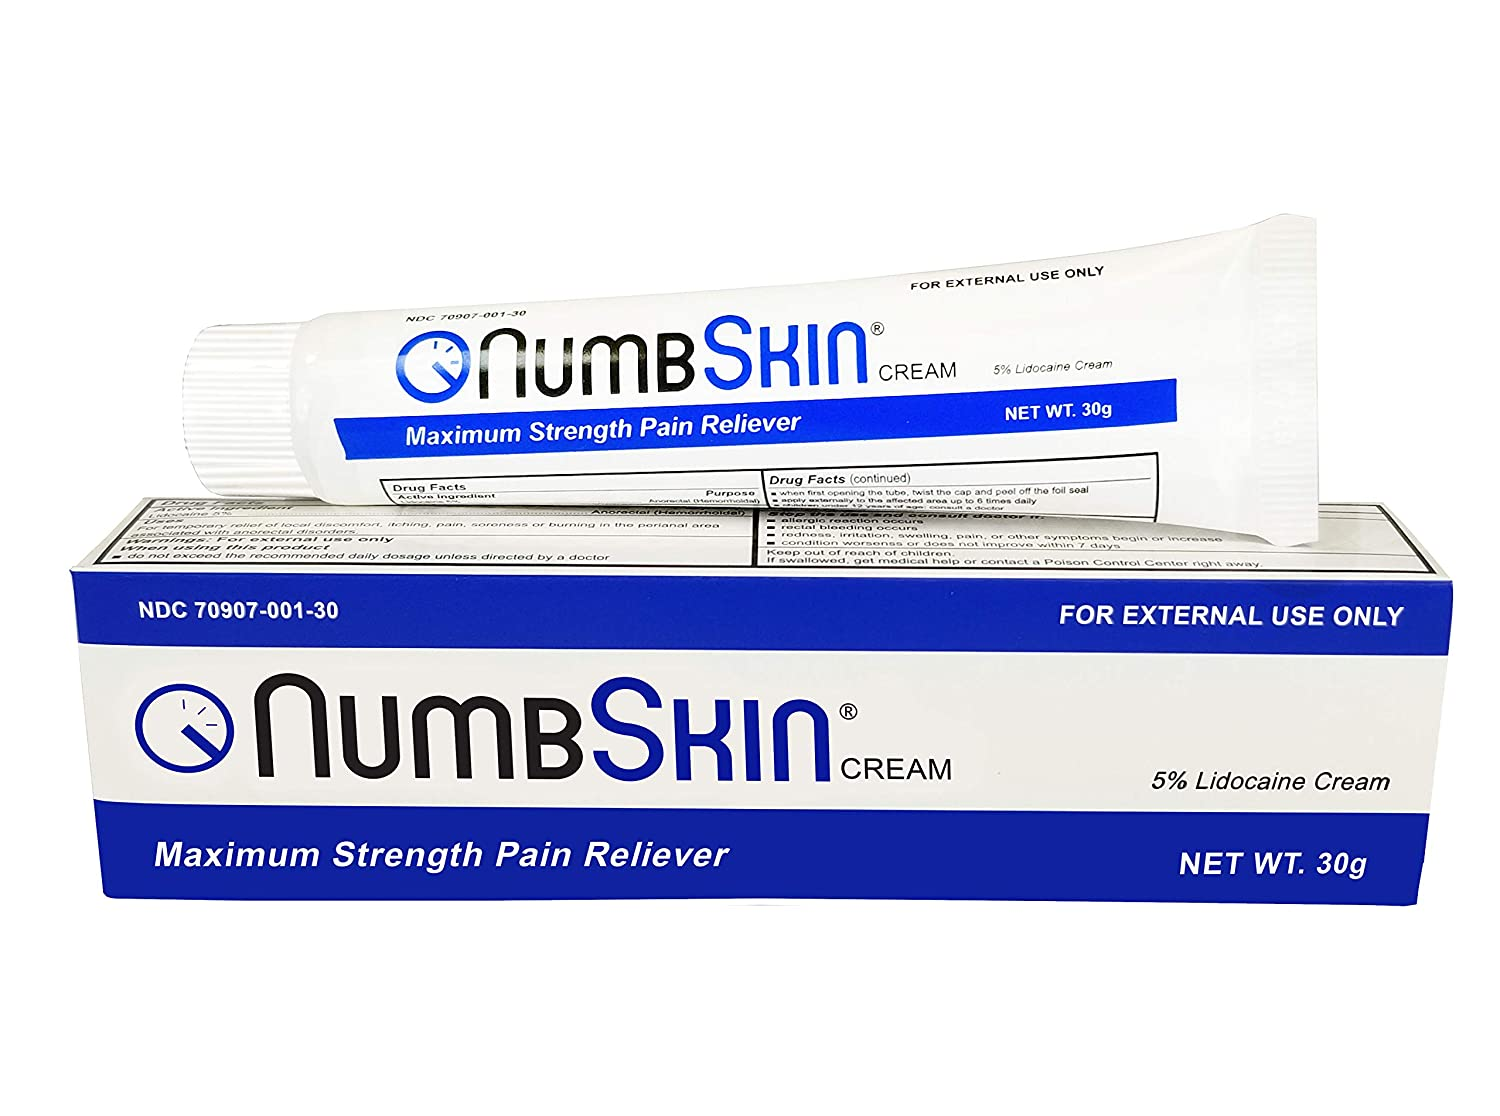 New Numbskin Numbing Cream 5% Lidocaine Topical Anesthetic– Fast Acting Tattoo Numbing Cream for Deep Pain Relief & Numbing Cream for Microneedling/Piercing/Microblading/Laser Hair Removal (1 tube)